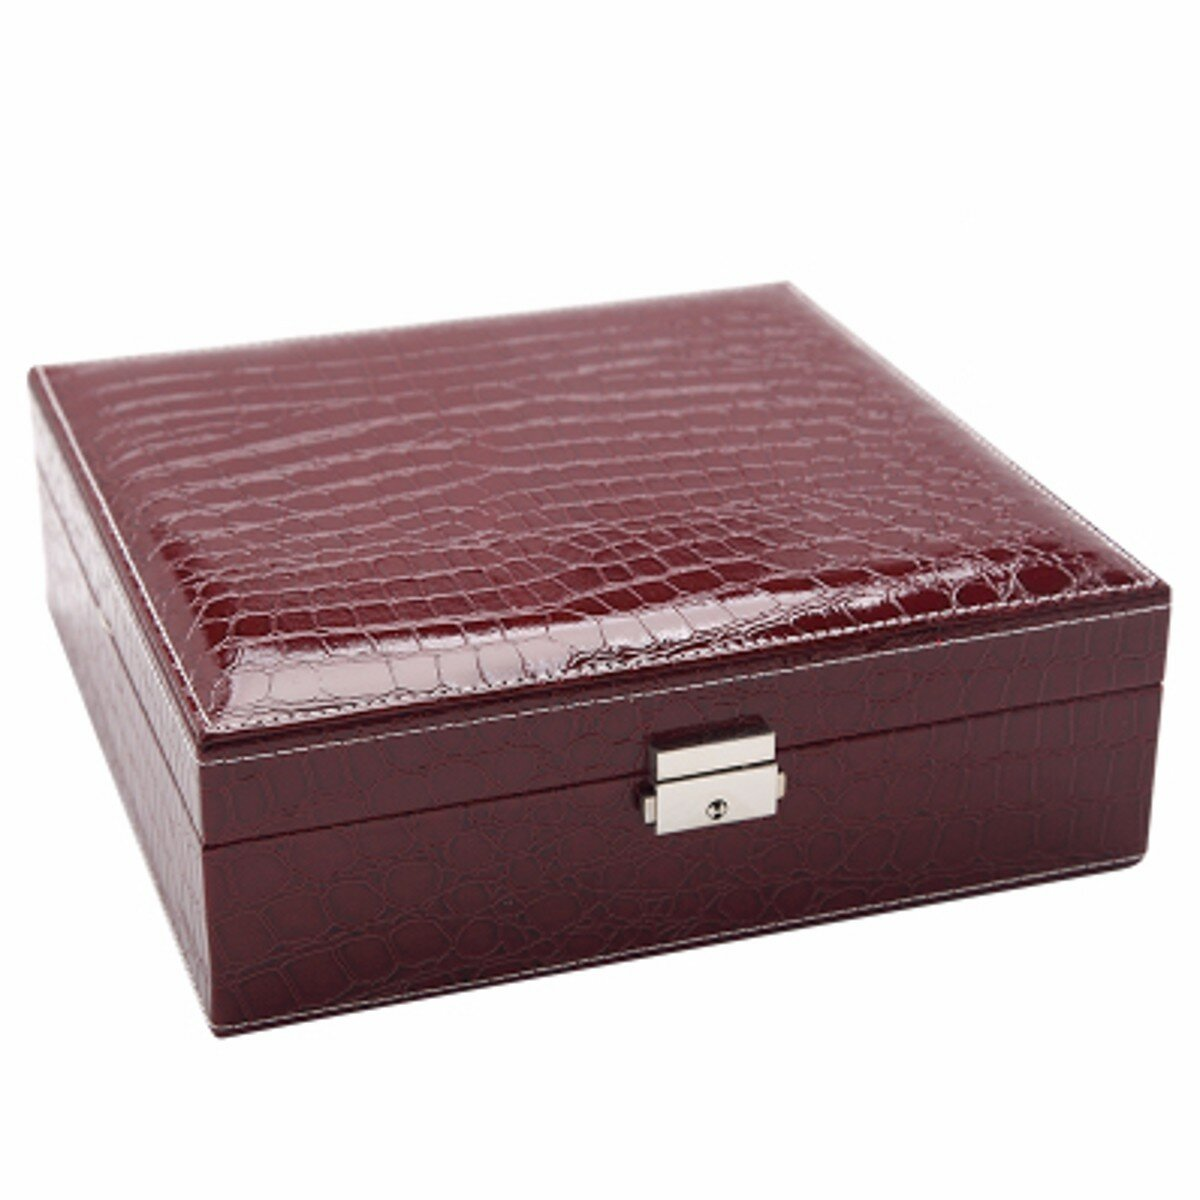 Mirror Lock Leather Storage Organizer Jewelry Box